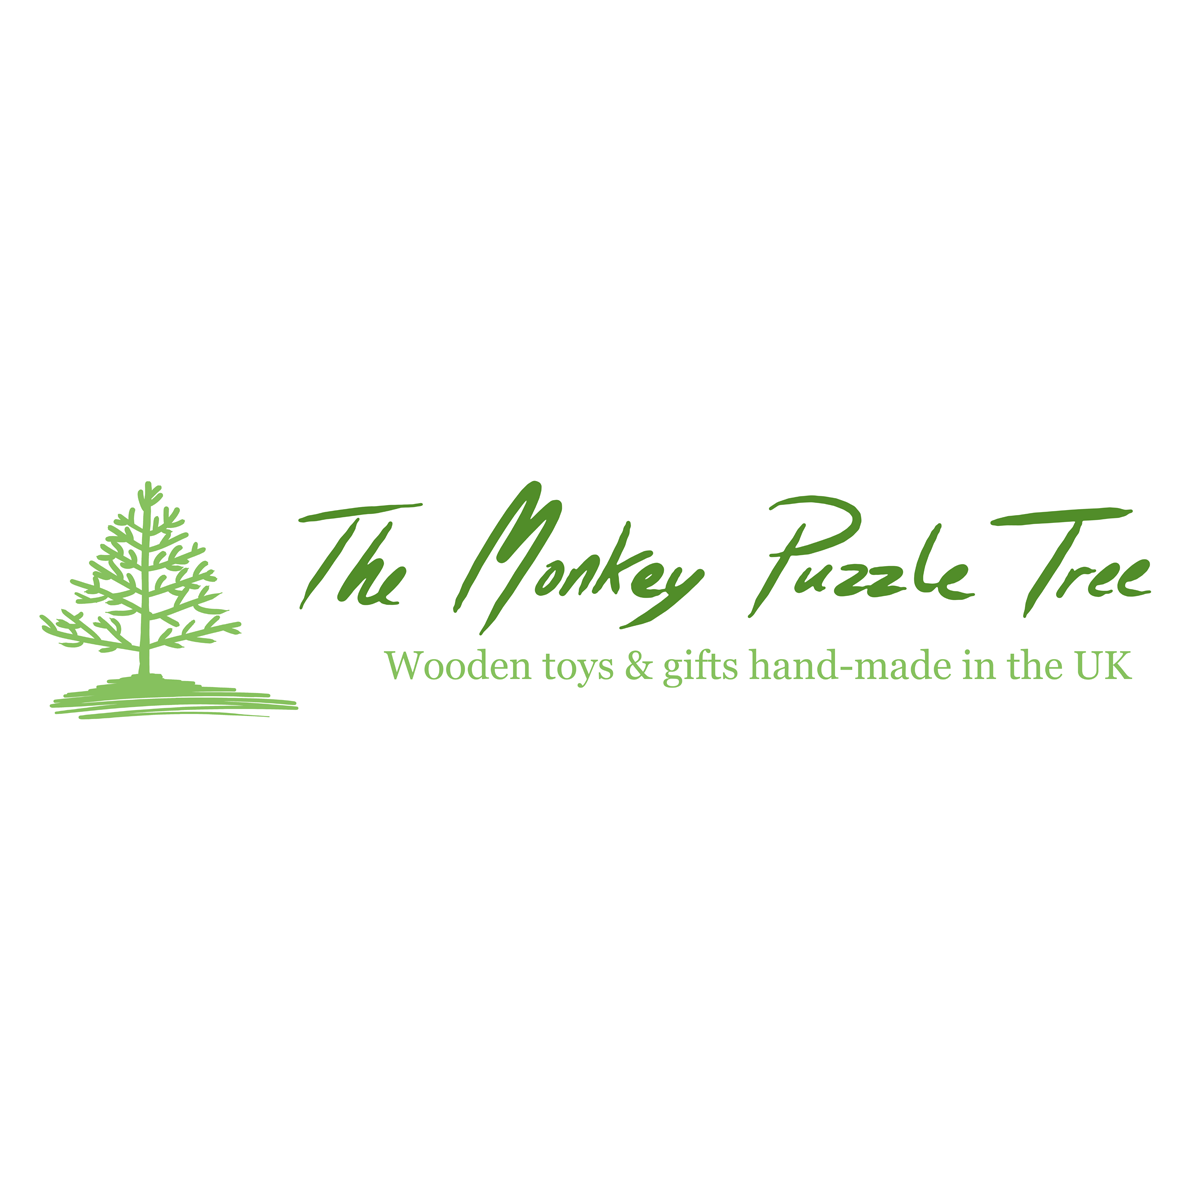 The Monkey Puzzle Tree Hand-Made Wooden Toys Logo - logo design by PixelDuck